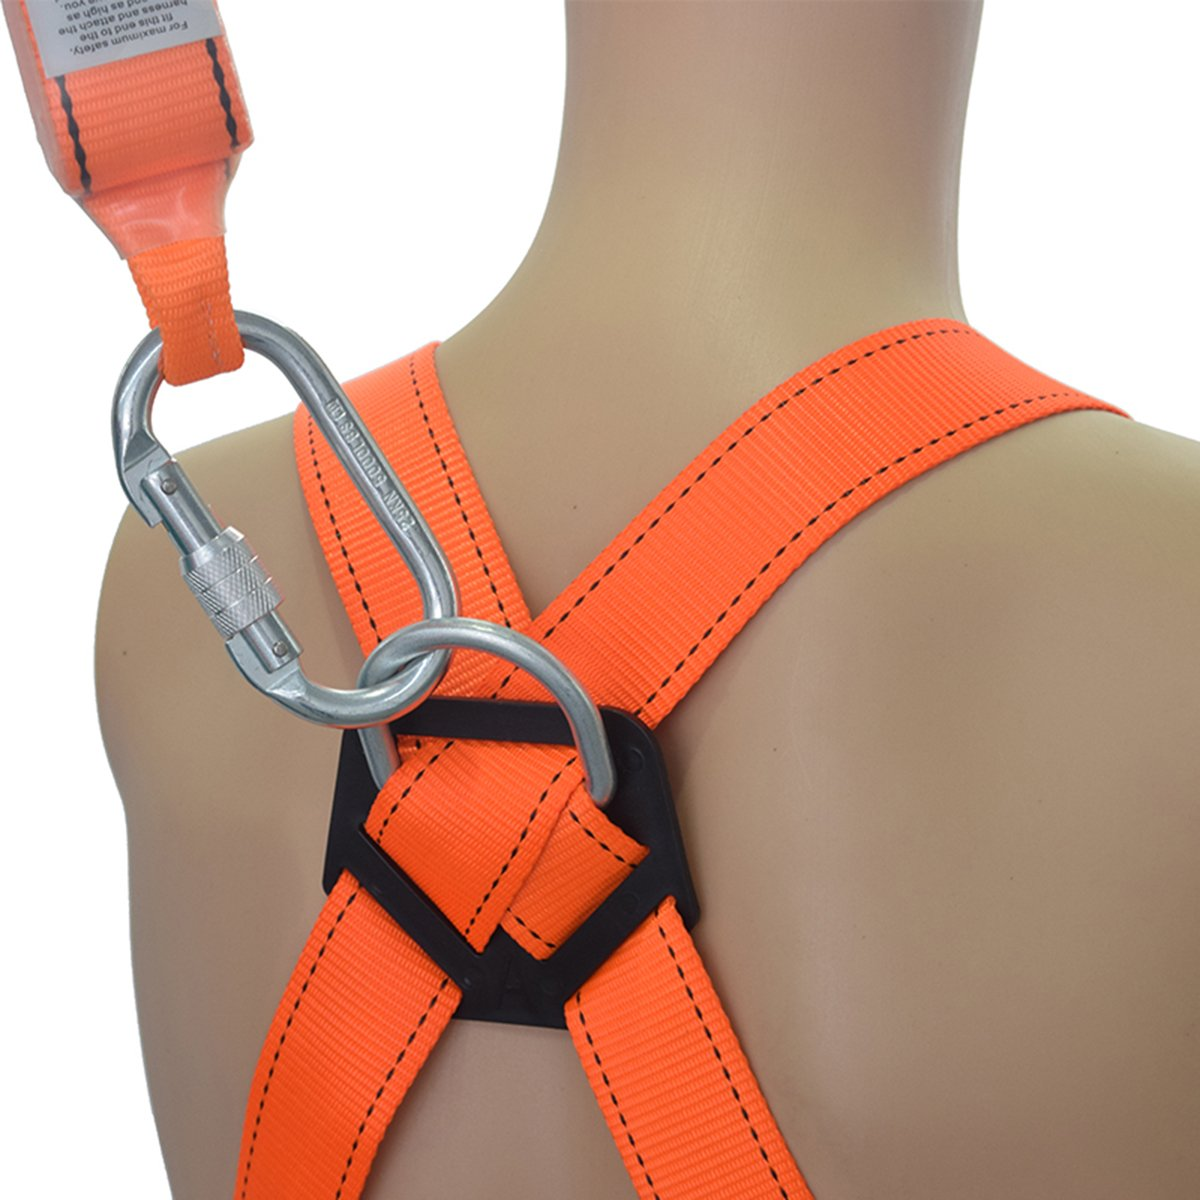 KSEIBI 421024 Full Body Fall Protection Light Weight Safety Harness w D-Ring and Chest Pass Thru Buckles (LIGHT-PRO) by KSEIBI (Image #3)